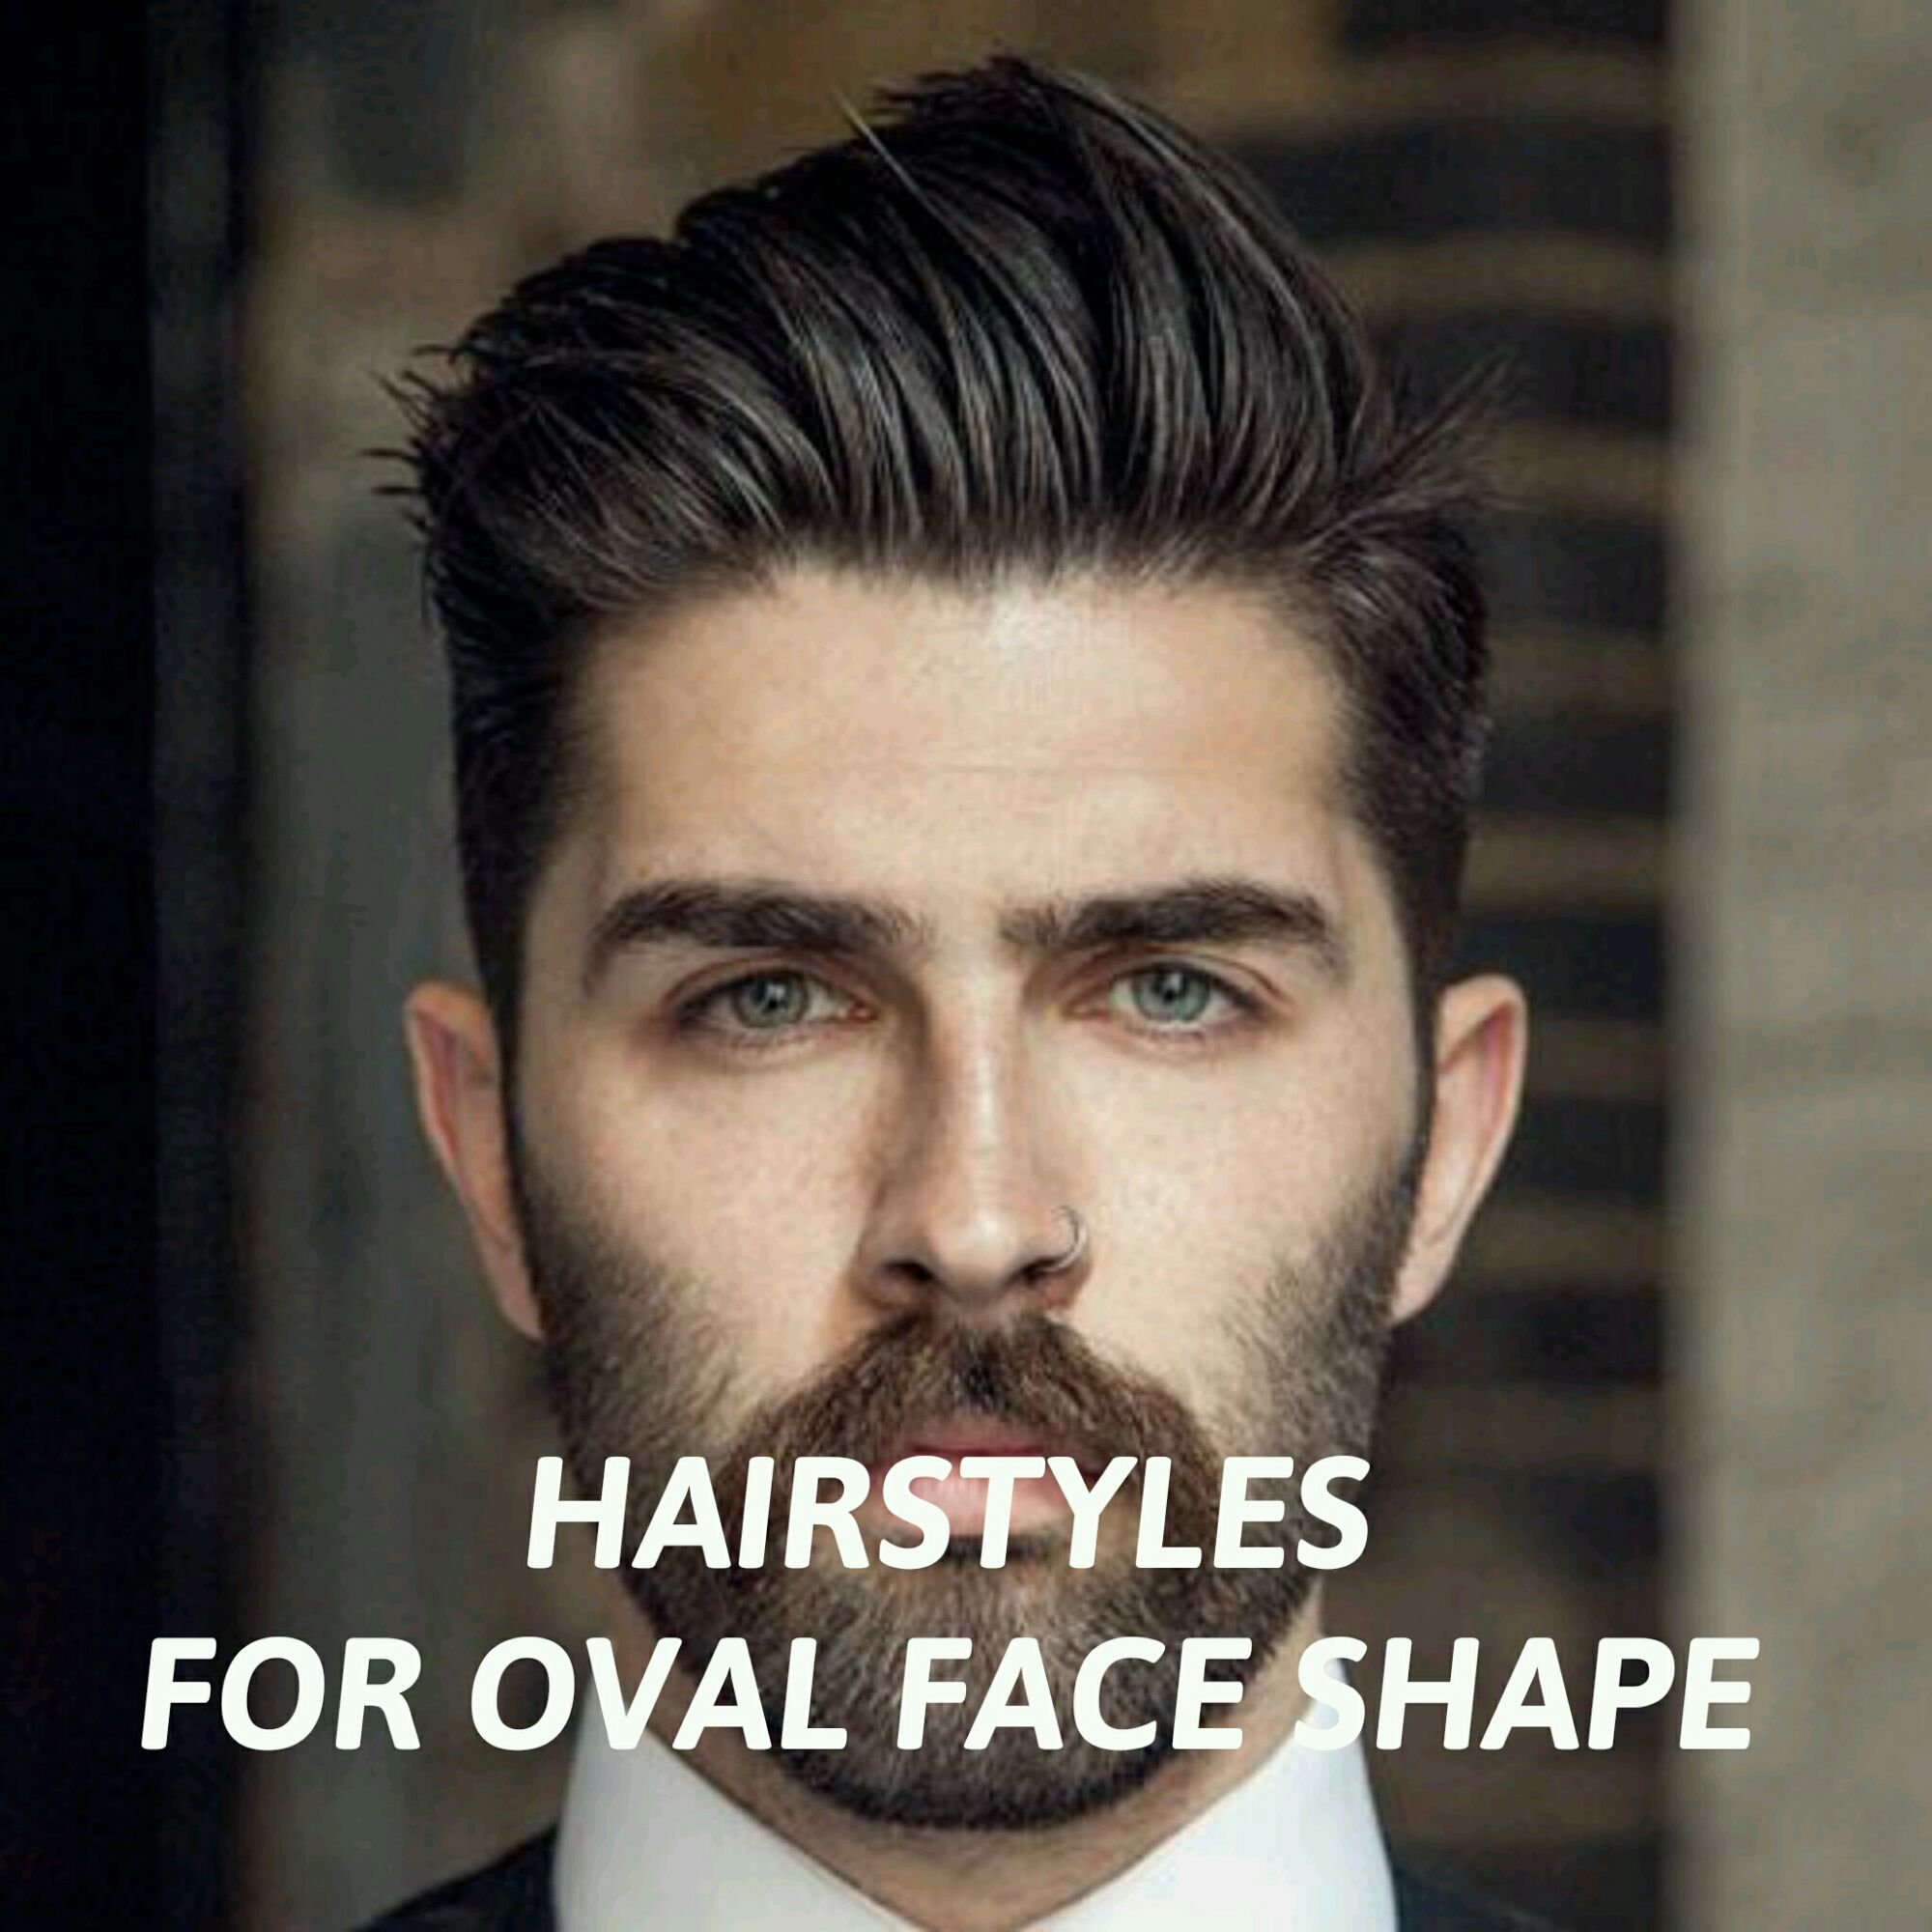 Men 039 S Hairstyle For Oval Face Over 40 Oval Face Men Oval Face Hairstyles Long Face Haircuts